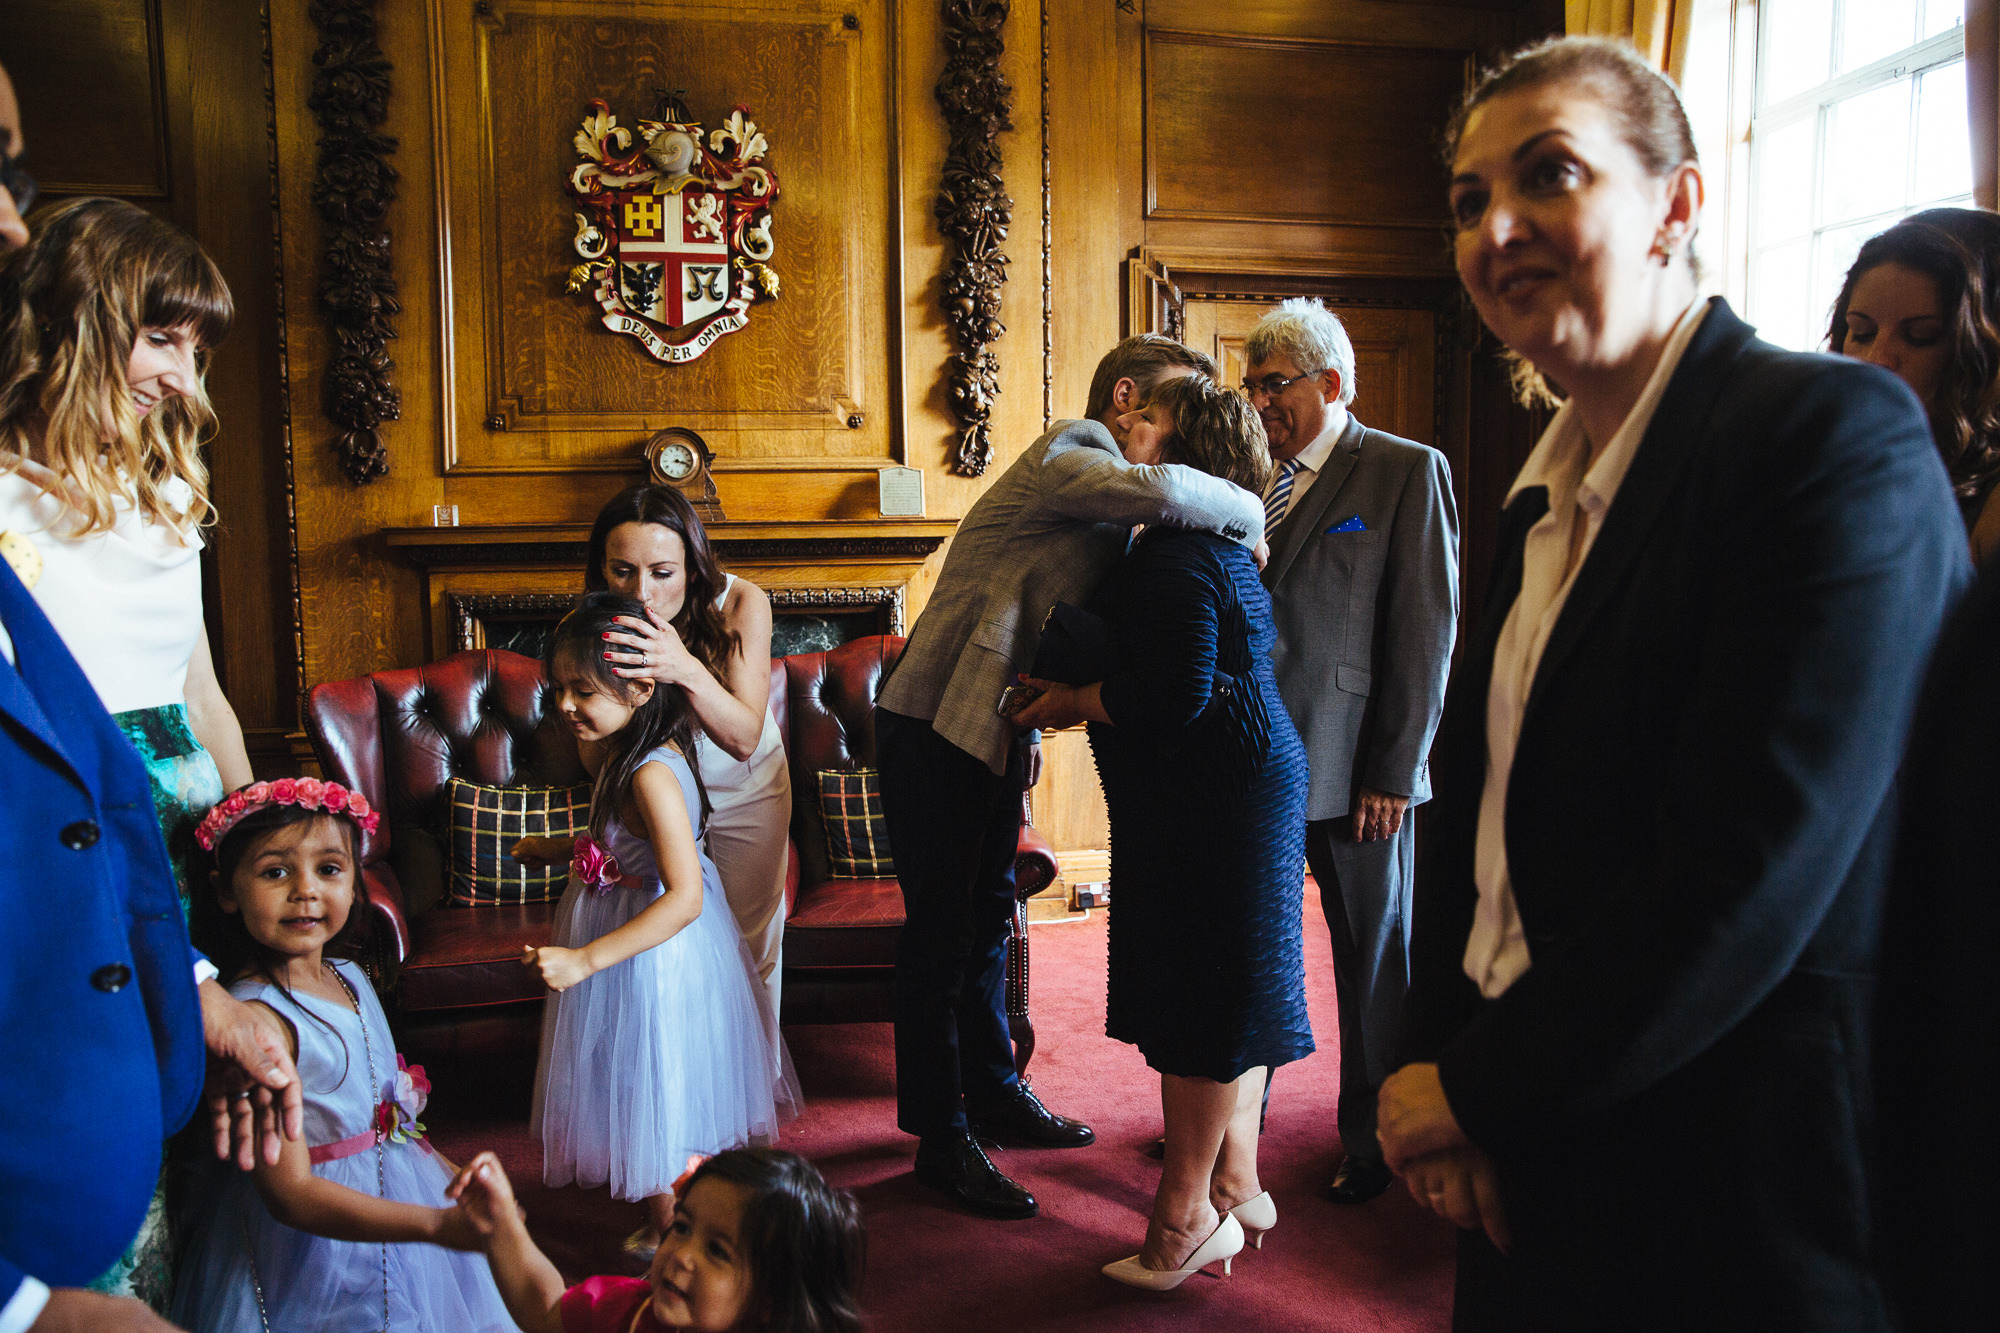 intimate wedding ceremony at Islington town hall